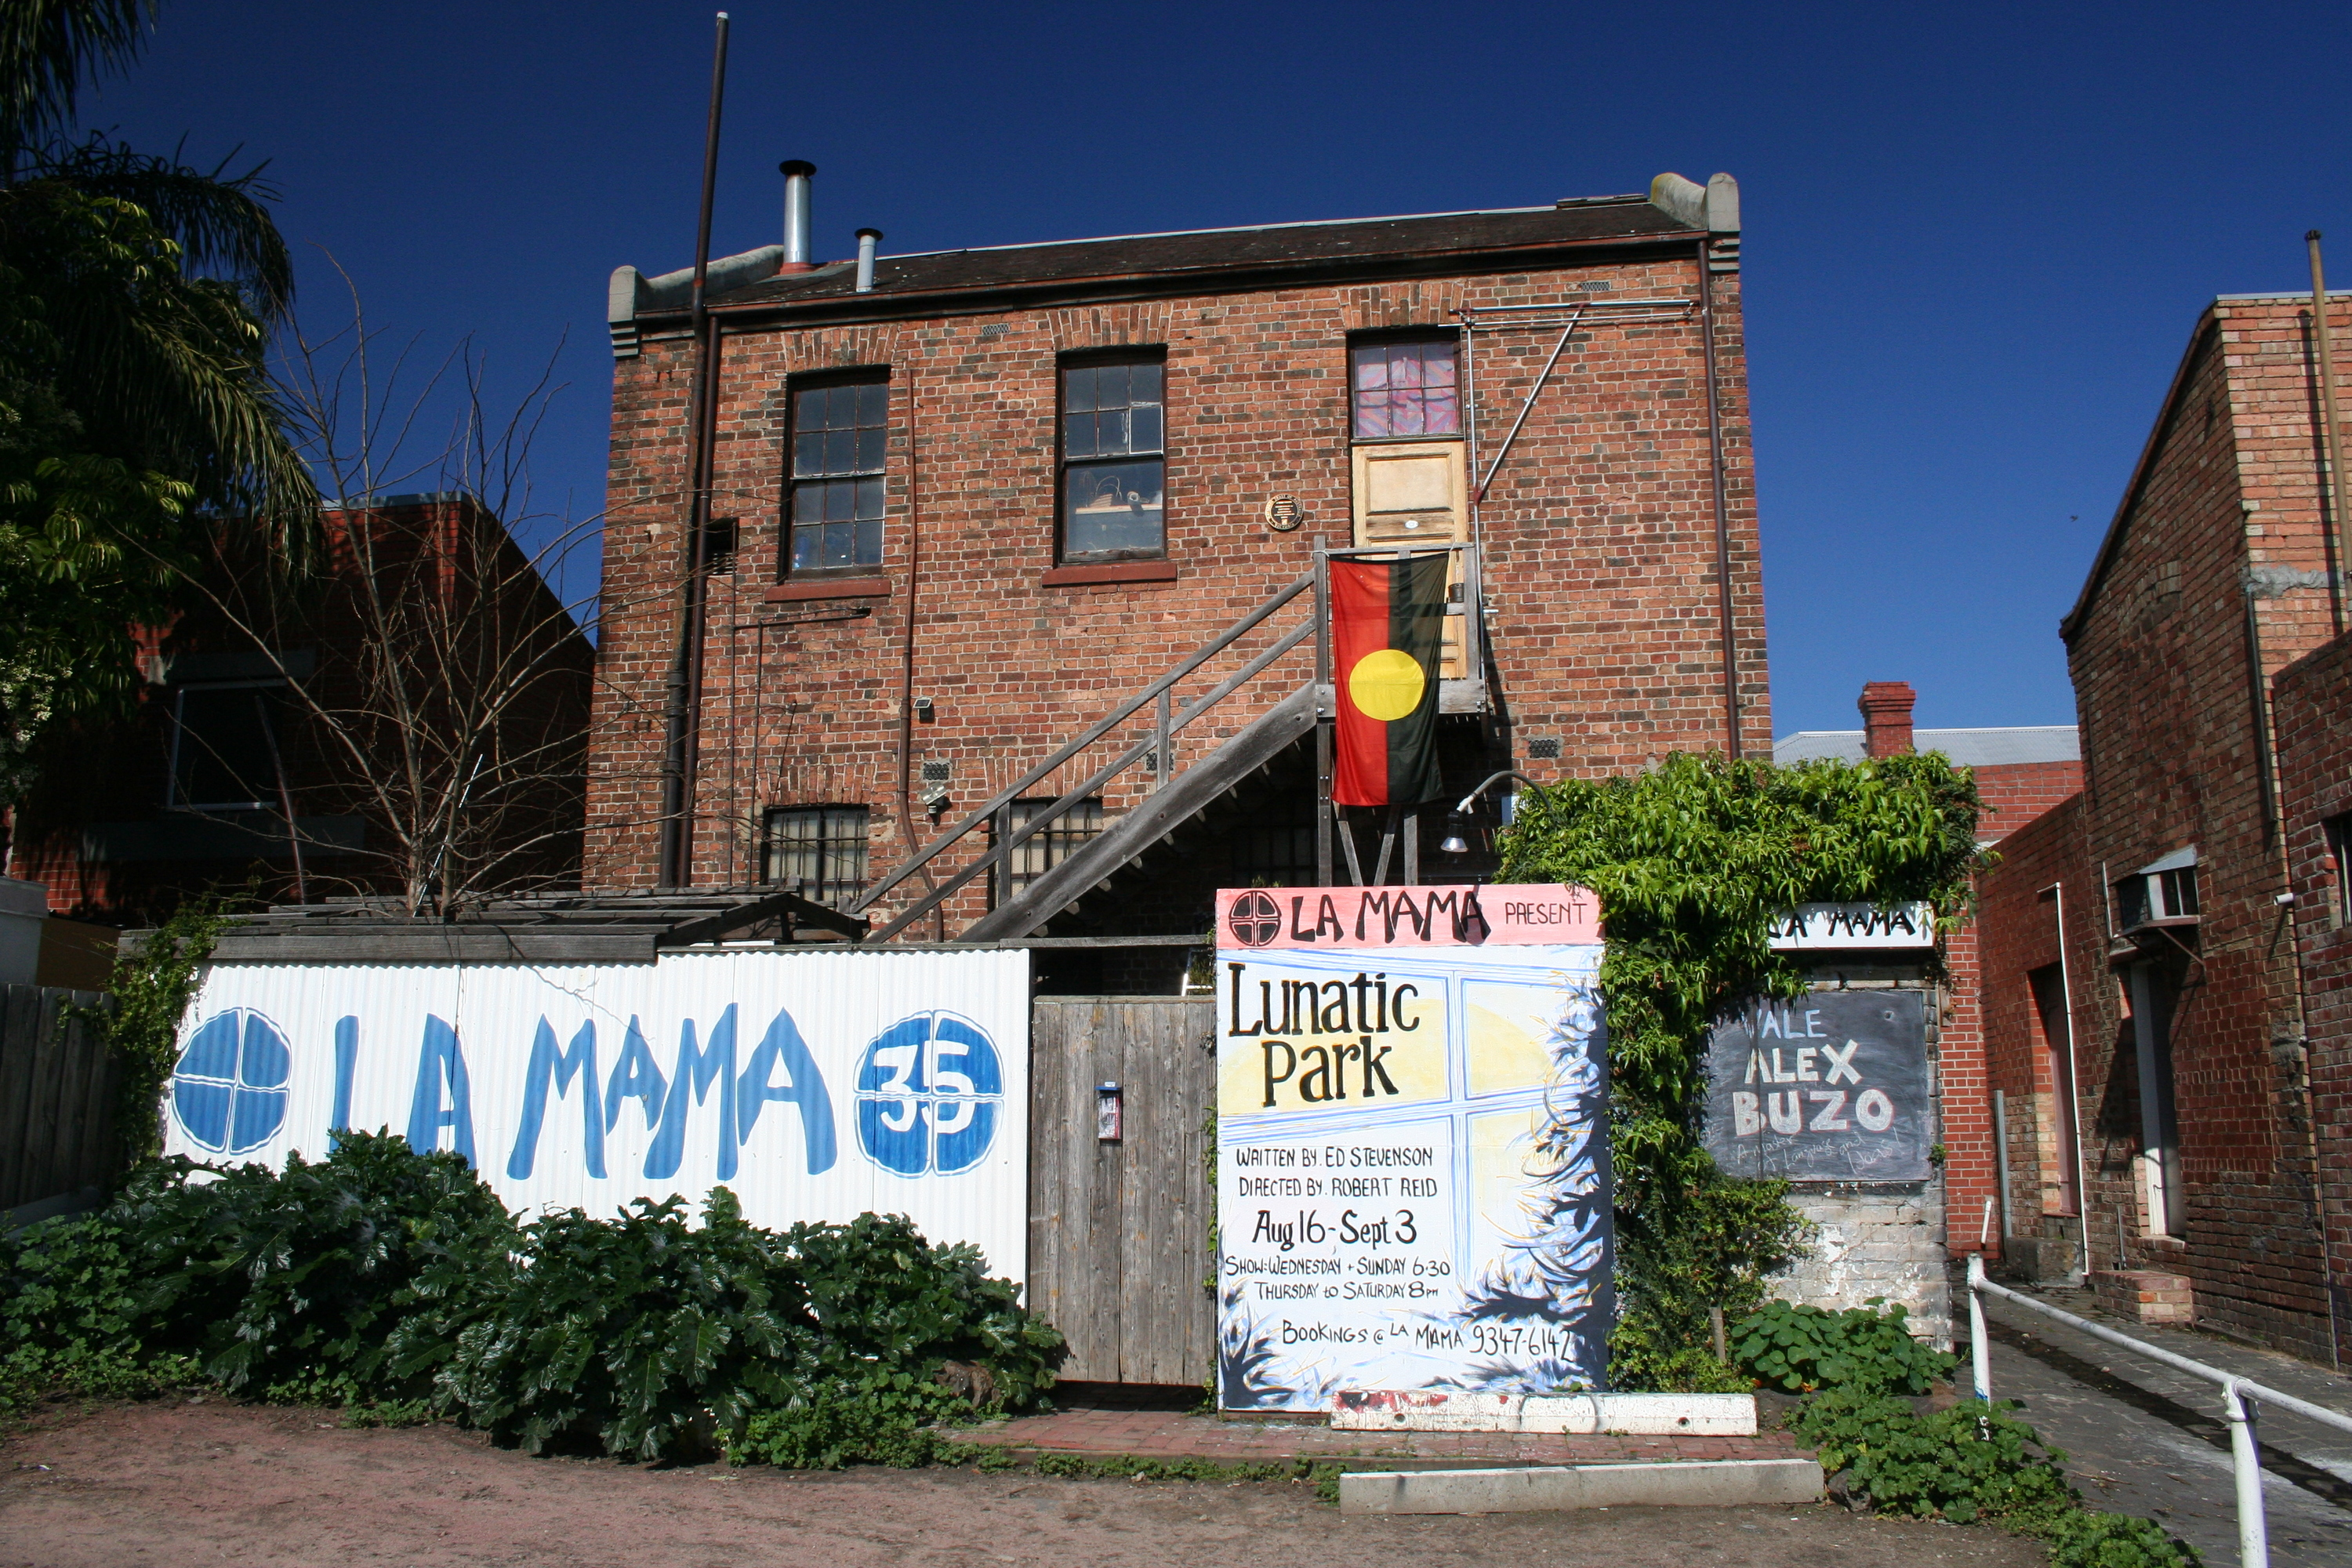 Melbourne's beloved La Mama Theatre is set for a rebuild after a devastating fire